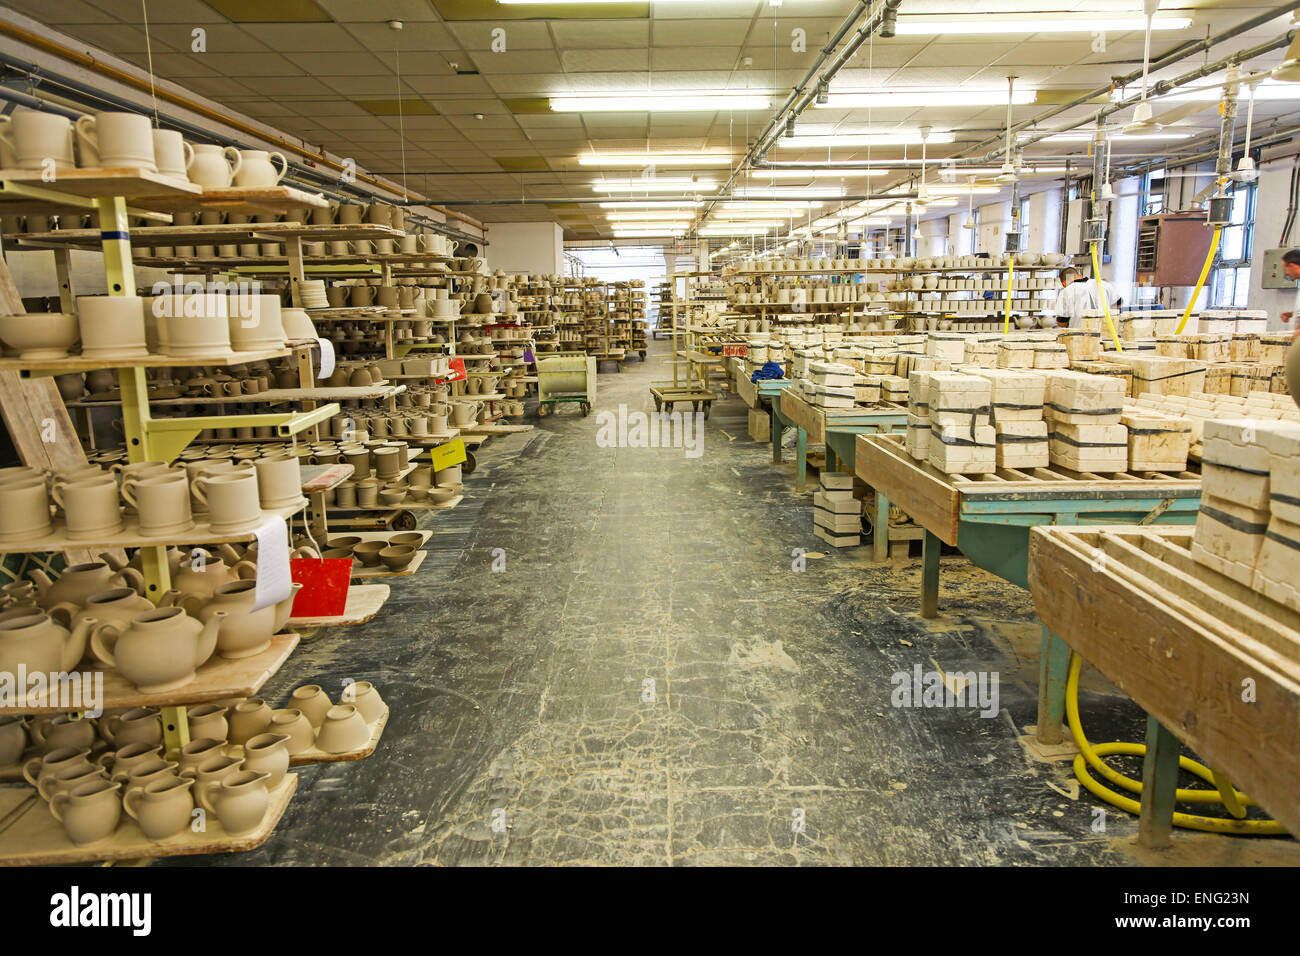 Unfettled (unsmoothed), unglazed and unfired mugs vases and teapots at the Emma Bridgewater pottery factory Stoke - Stock Image